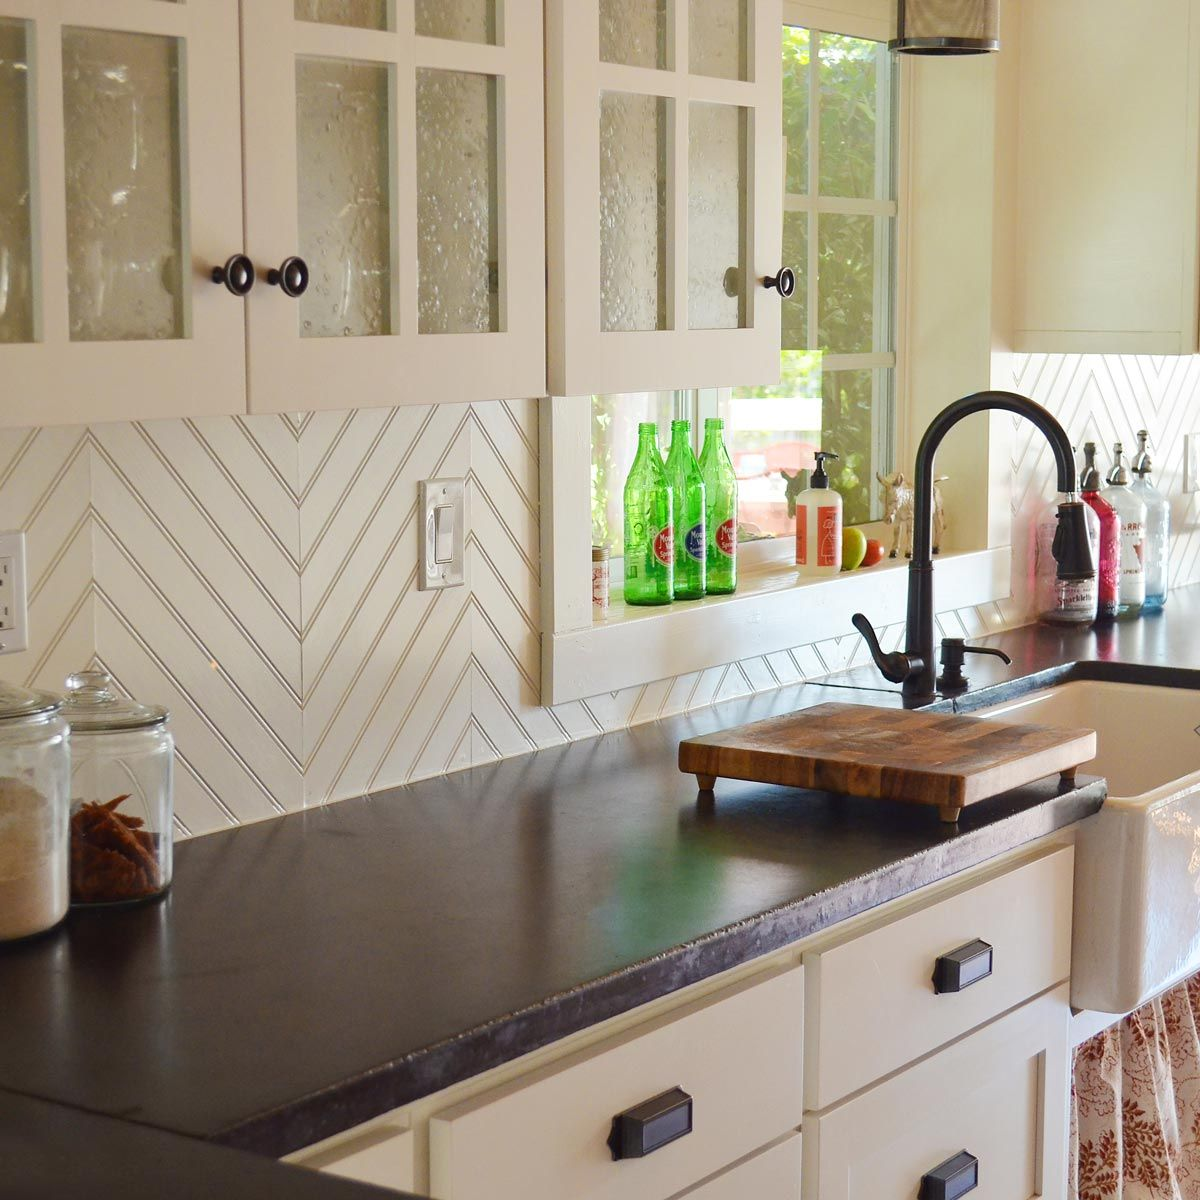 Family Handyman Watching The Latest Design Shows It Can Be Hard To Believe There Is A Unique Kitchen Backsplash Beadboard Kitchen Kitchen Backsplash Designs